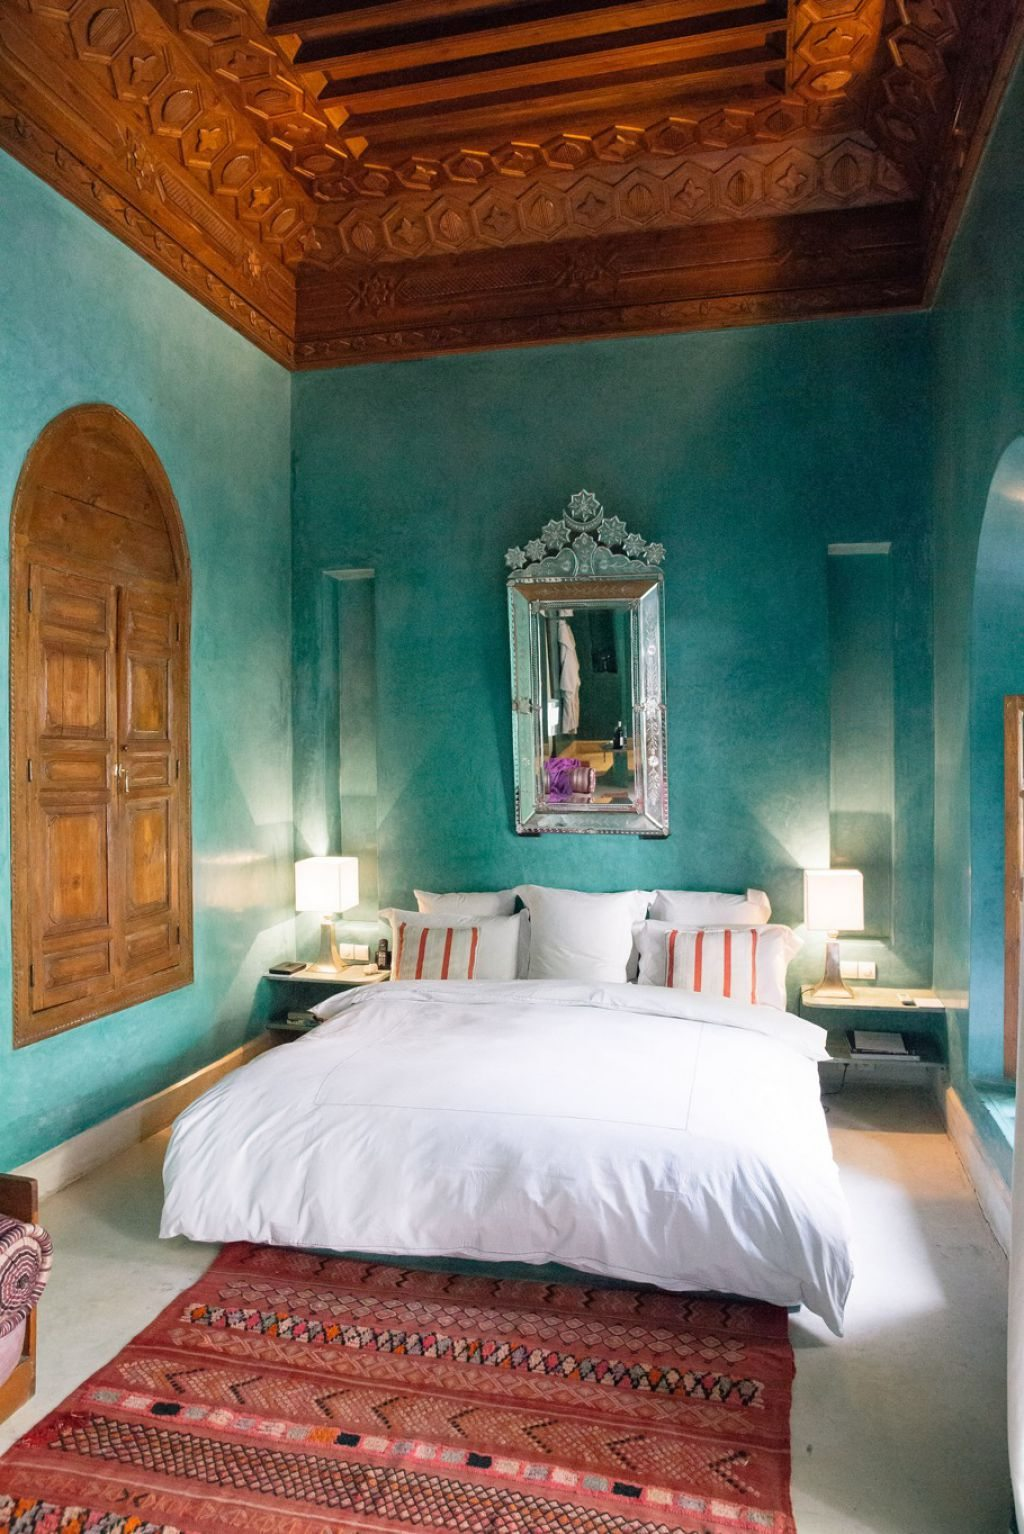 Moroccan Wall Mirror in Bedroom